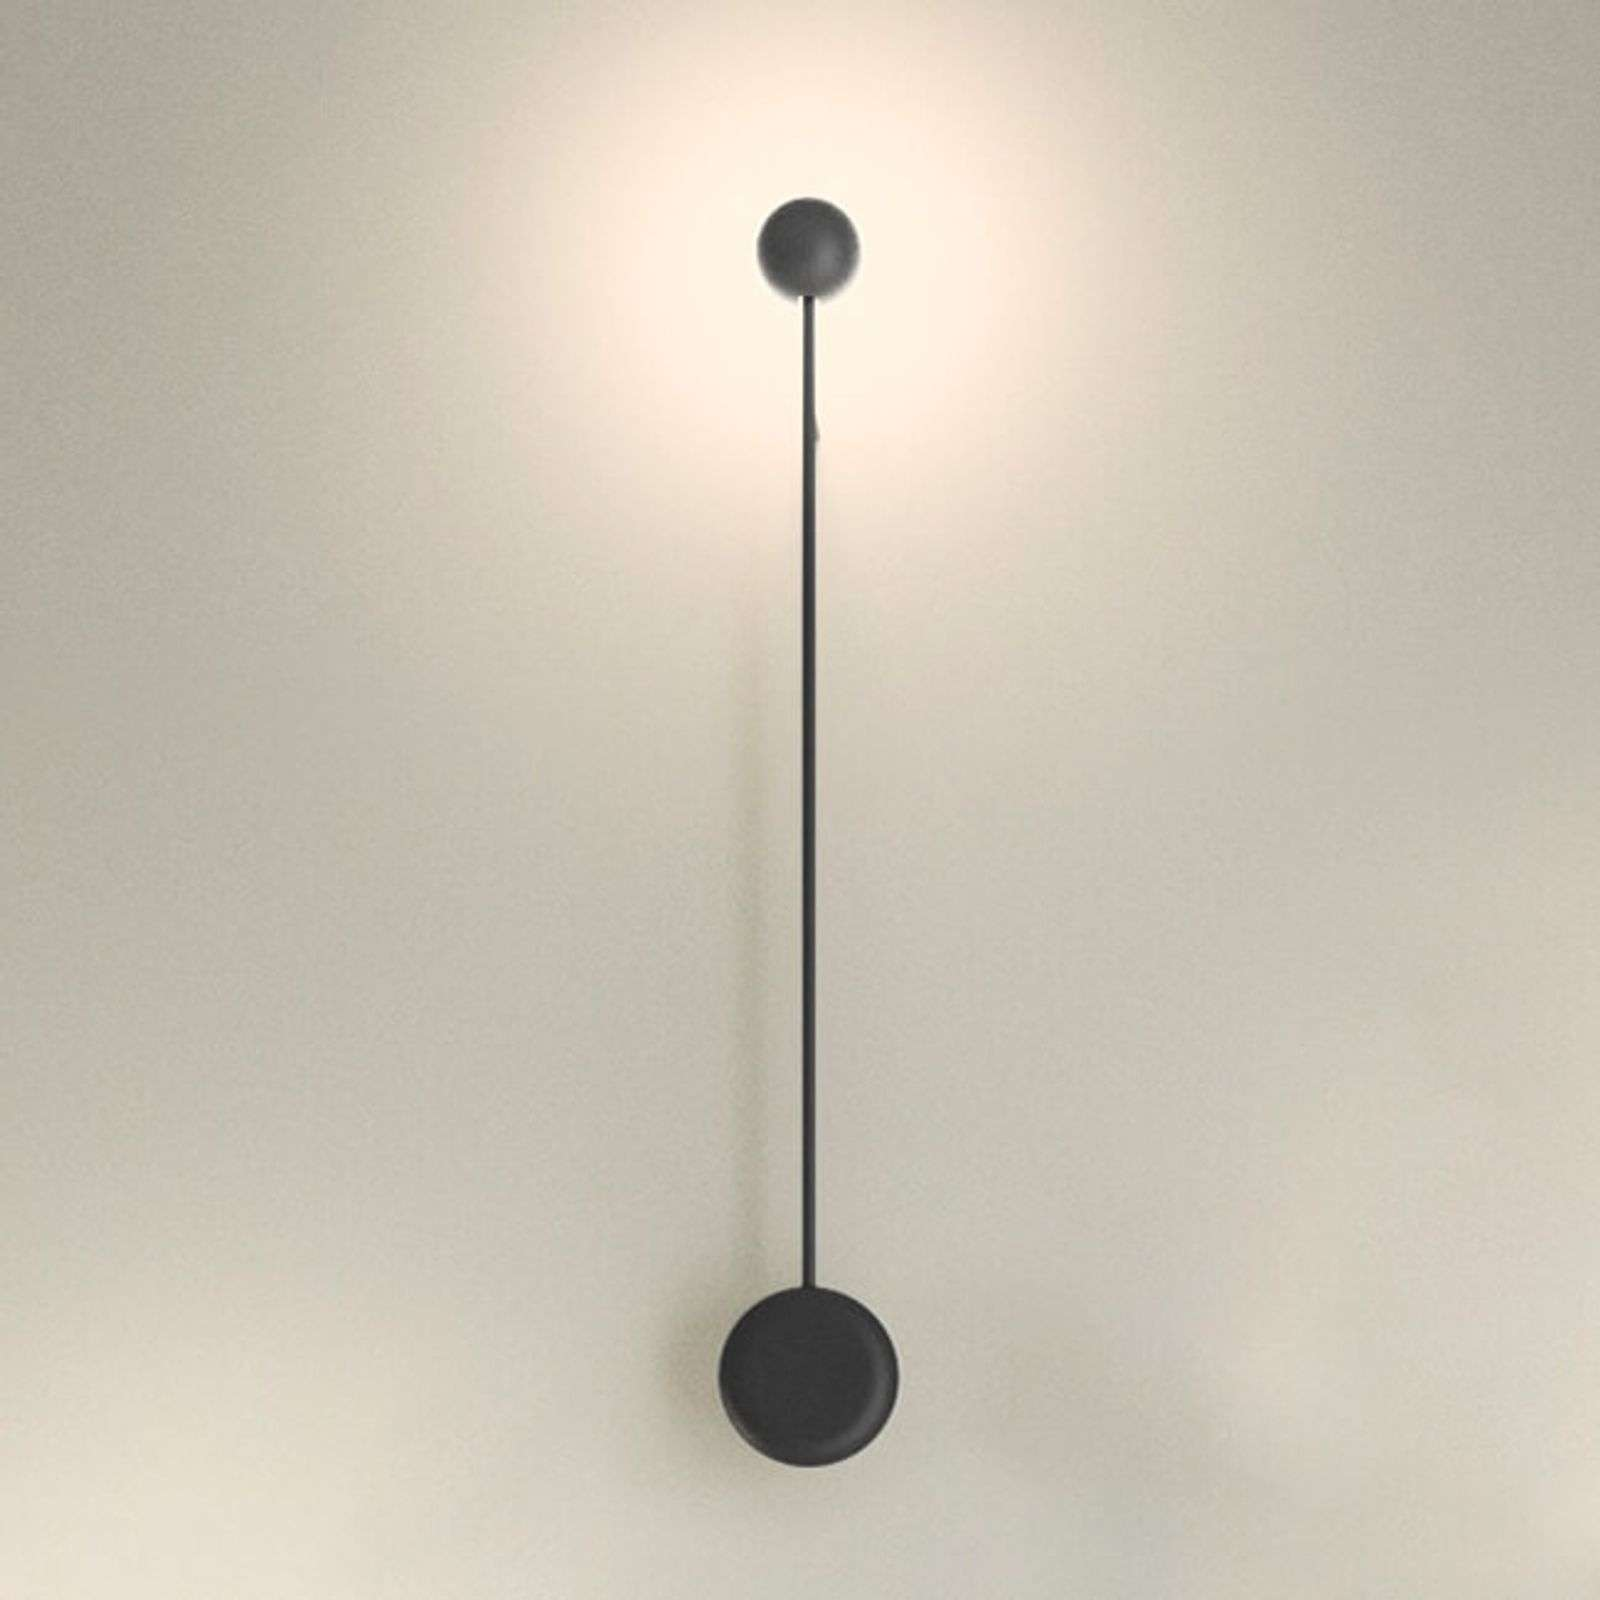 Applique LED Pin a luce indiretta, nera